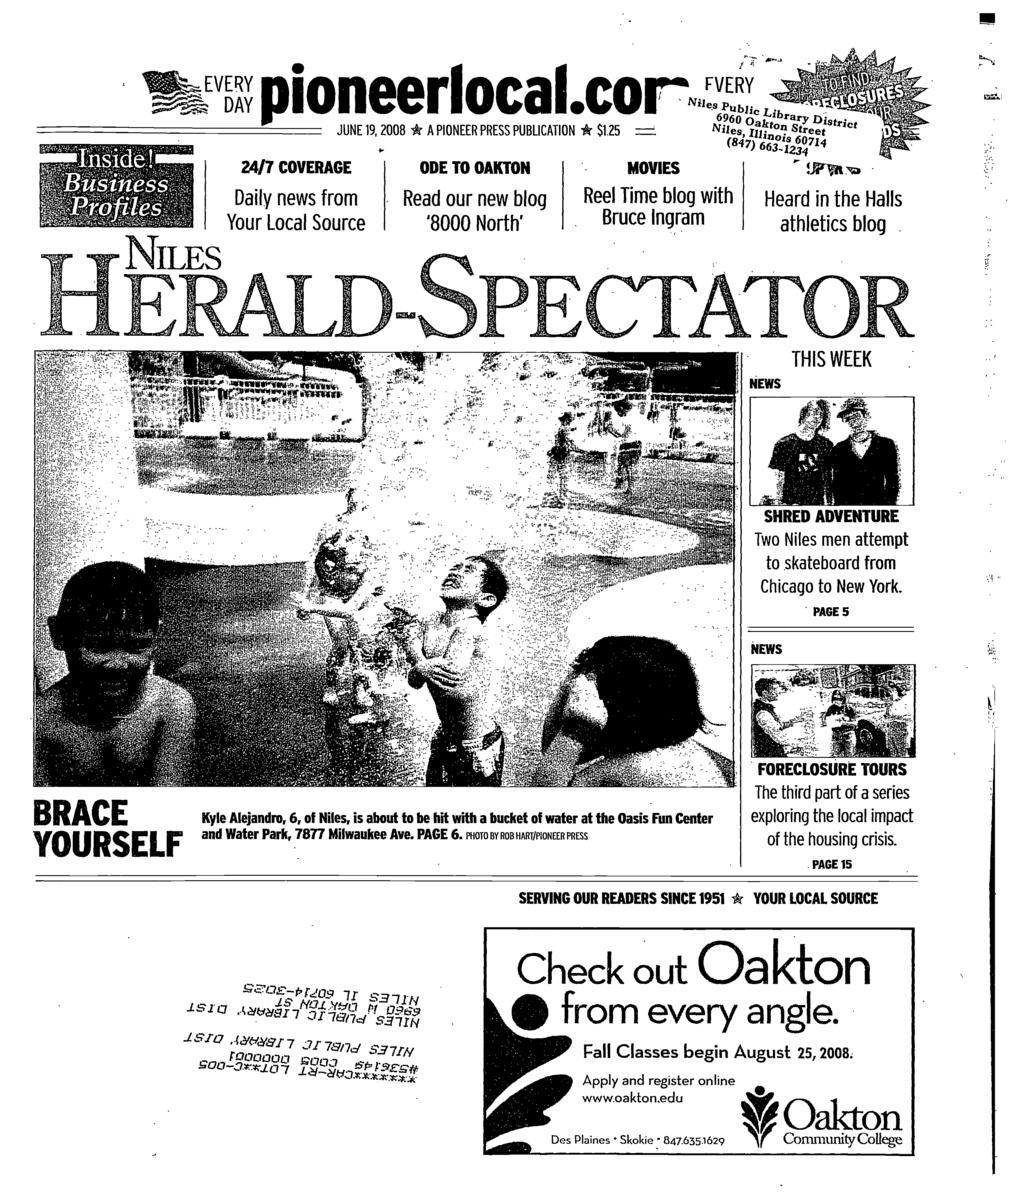 NLES p i oneerloca cor'ncyl 24/7 COVERAGE Daily news from Your Local Source ODE TO OAKTON Read our new blog '8000 North' MOVES Reel Time blog with Bruce ngram 14 6960 taryd JUNE 19, 2008 * A PONEER